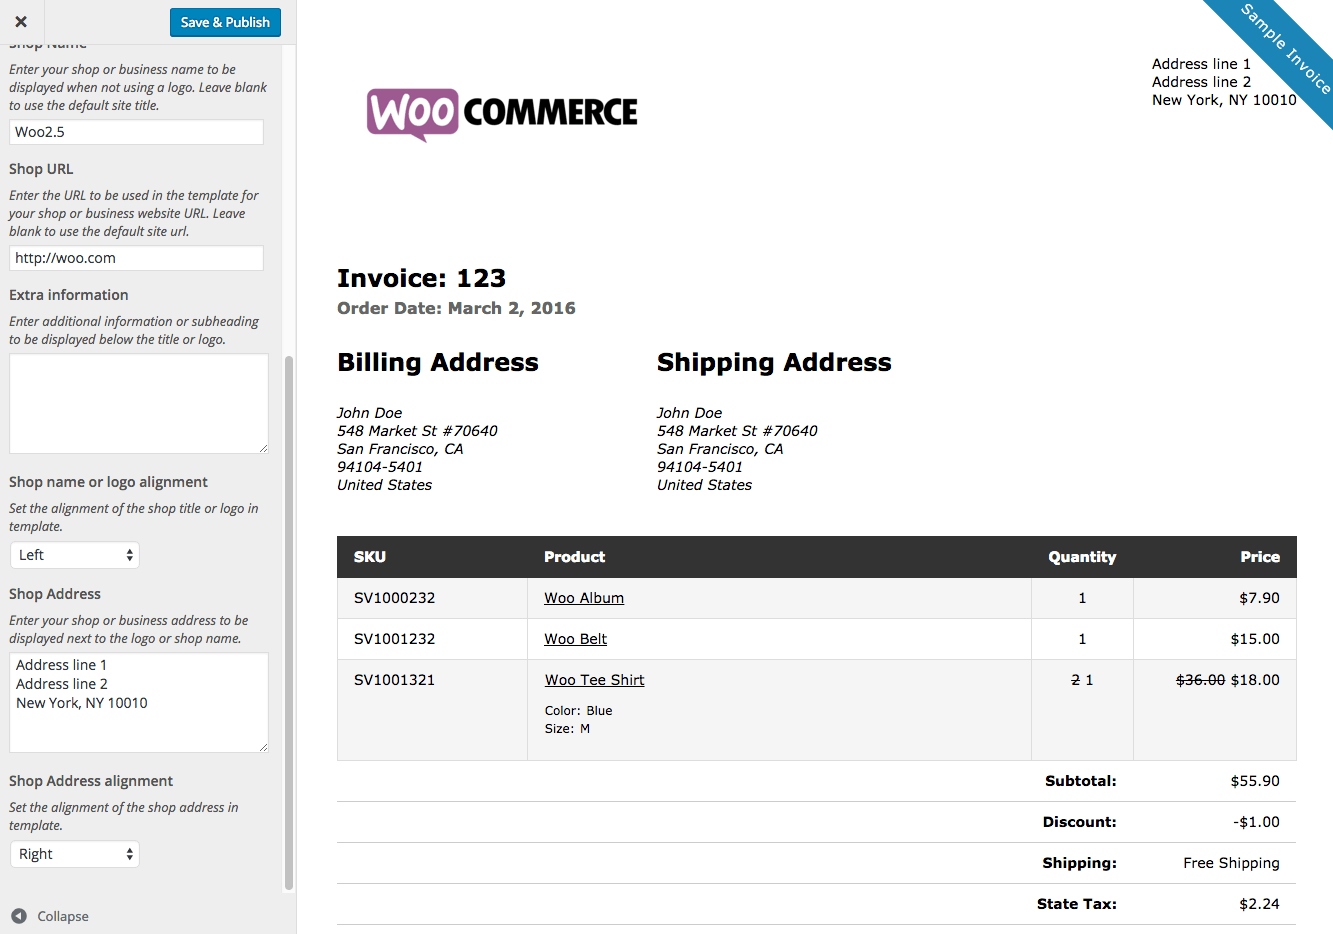 Coachoutletonlineplusus  Surprising Woocommerce Print Invoices Amp Packing Lists  Woocommerce Docs With Lovely Woocommerce Print Invoices  Packing Lists Customizer With Easy On The Eye  Toyota Highlander Invoice Price Also Costco Invoice In Addition Ford F  Invoice And Invoice Template For Services As Well As Pre Printed Invoices Additionally Samples Of Invoices For Payment From Docswoocommercecom With Coachoutletonlineplusus  Lovely Woocommerce Print Invoices Amp Packing Lists  Woocommerce Docs With Easy On The Eye Woocommerce Print Invoices  Packing Lists Customizer And Surprising  Toyota Highlander Invoice Price Also Costco Invoice In Addition Ford F  Invoice From Docswoocommercecom